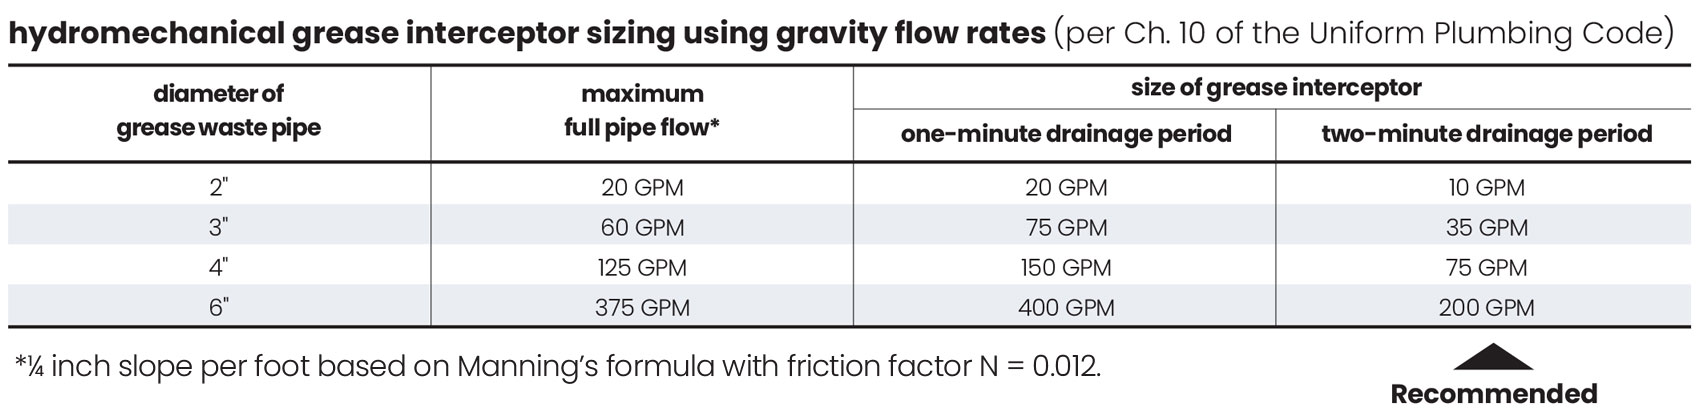 chart for sizing a grease interceptor by flow rate using Grease Production Sizing